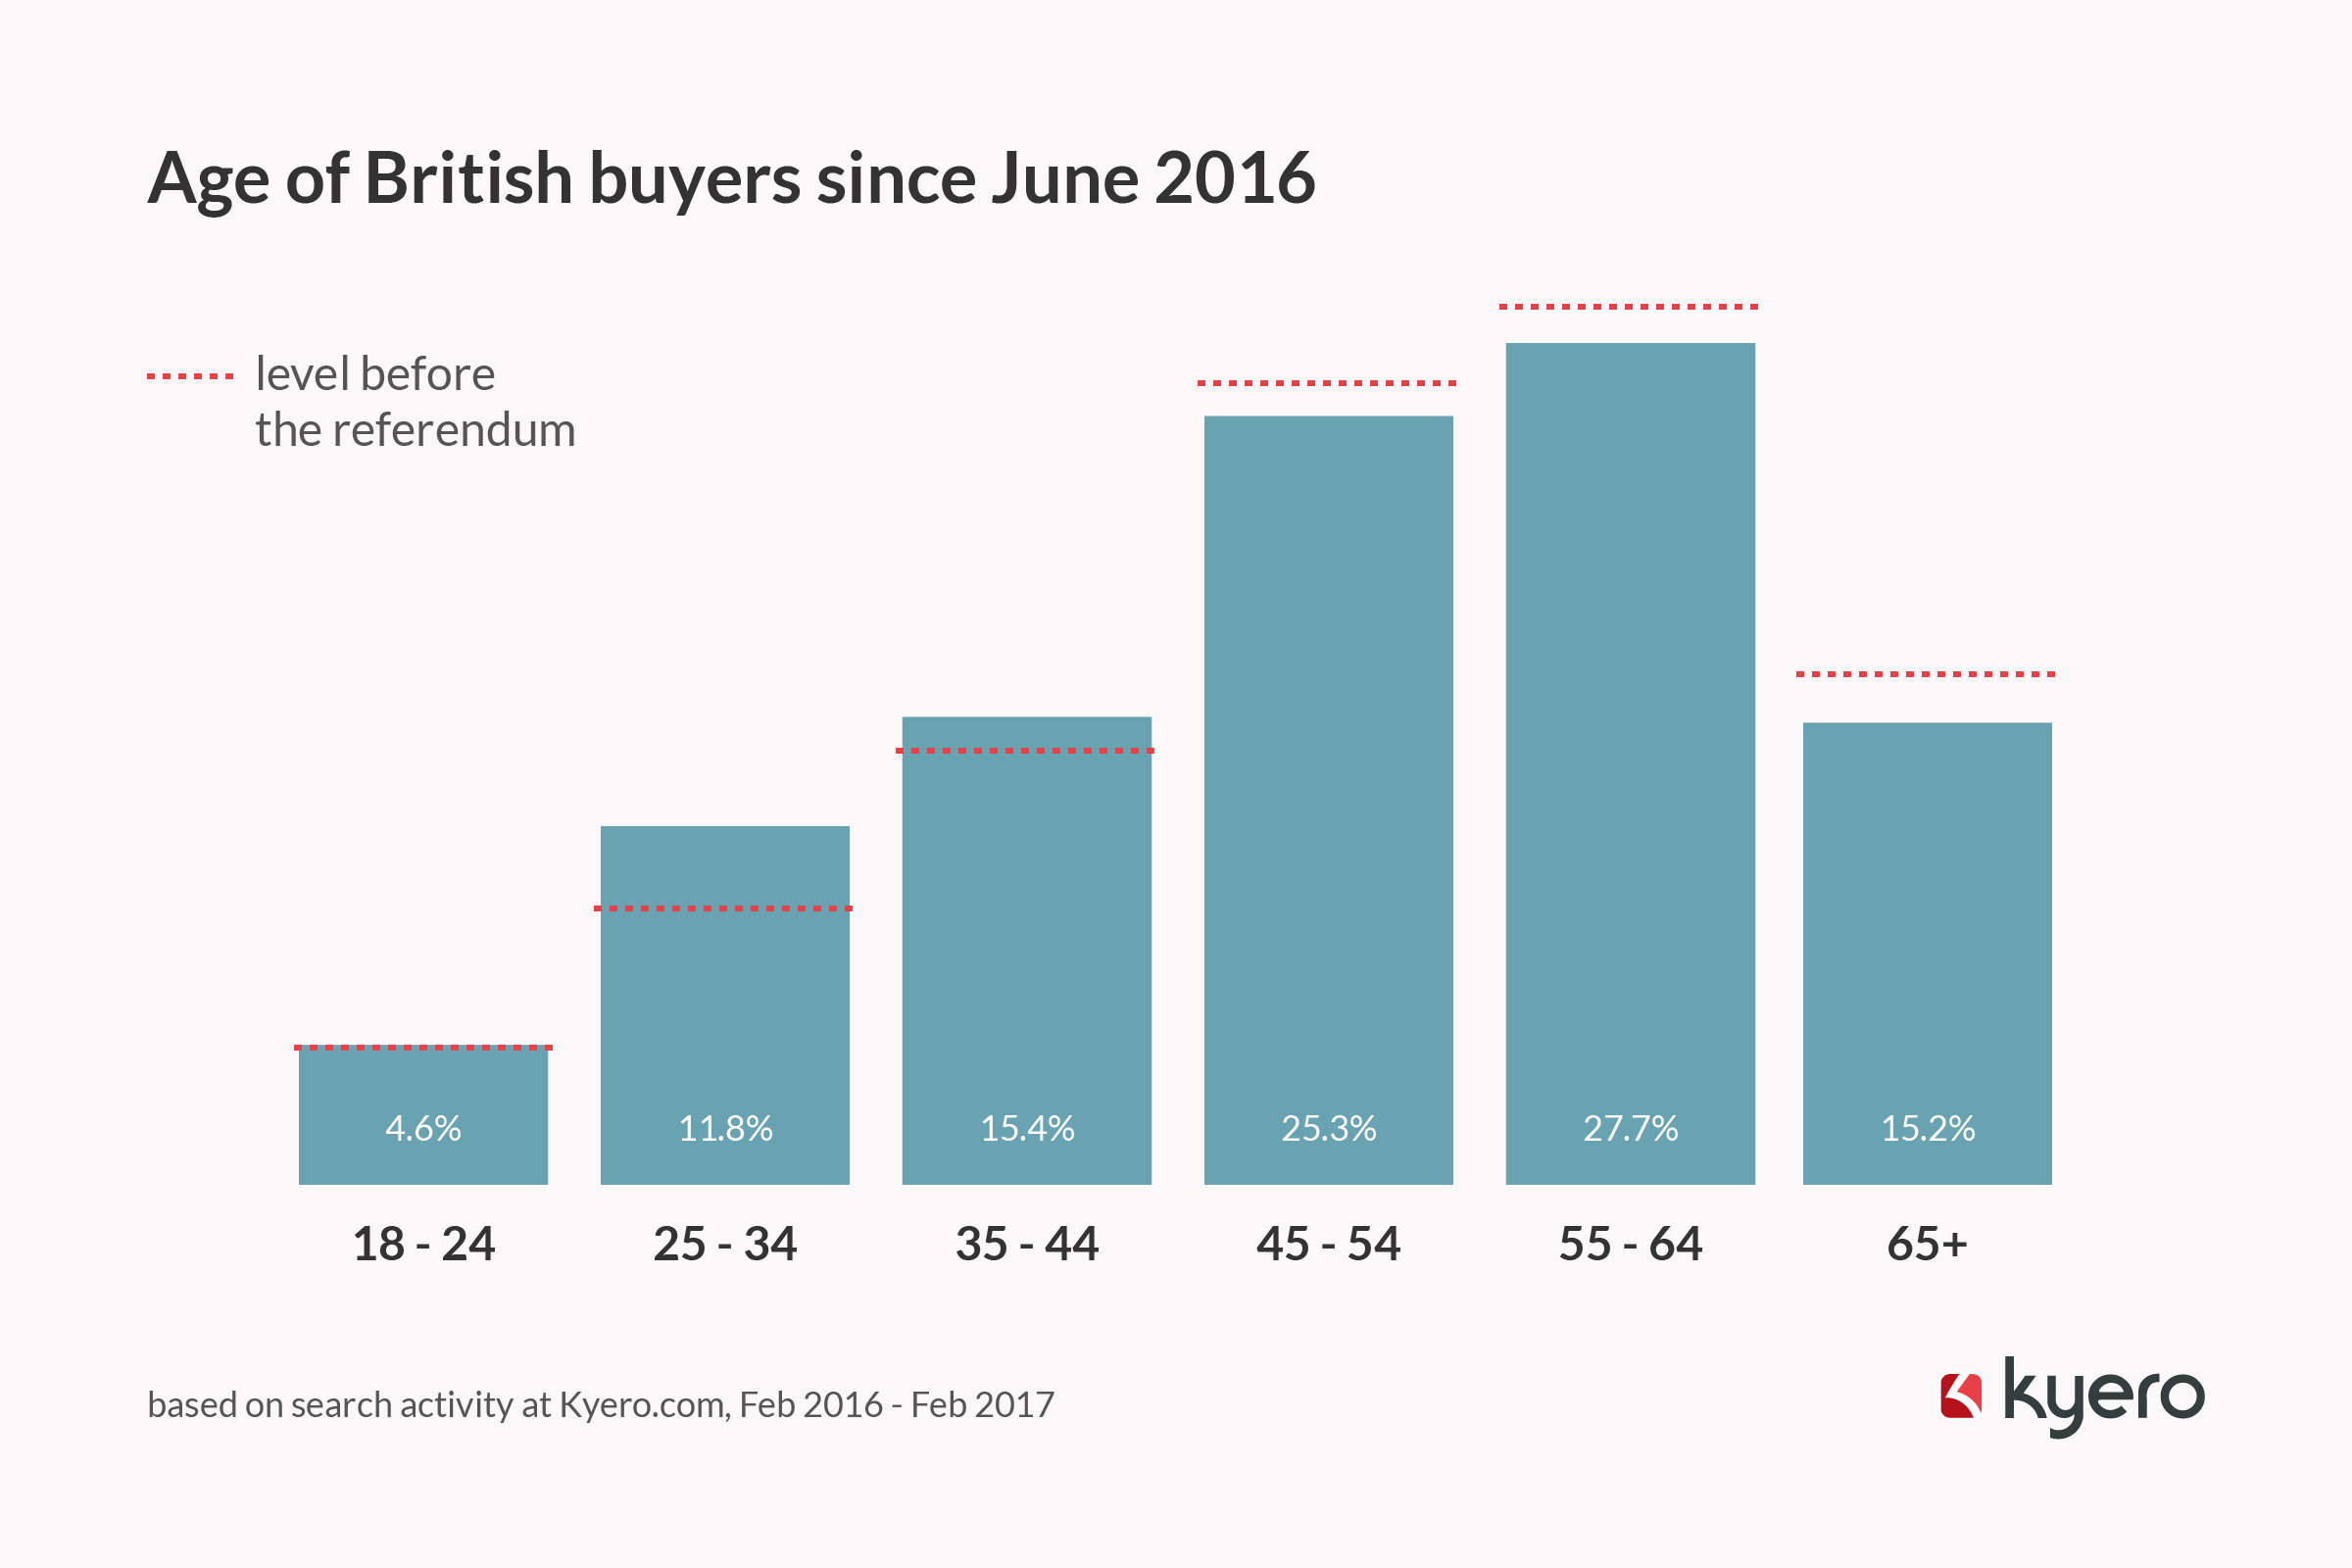 Age of British buyers since June 2016